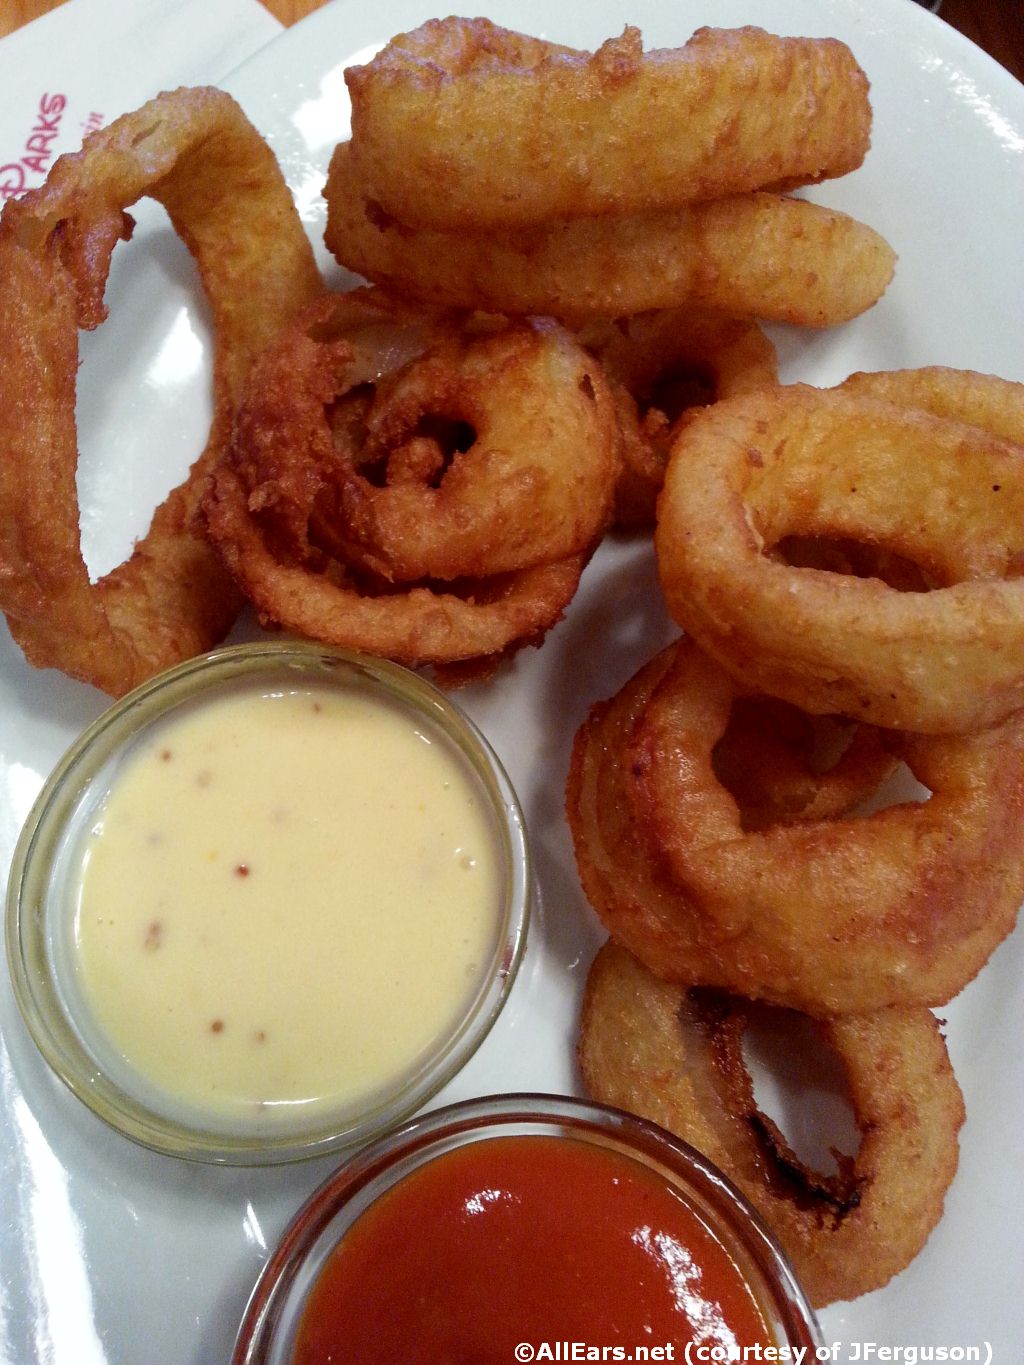 Previously Offered Onion Rings